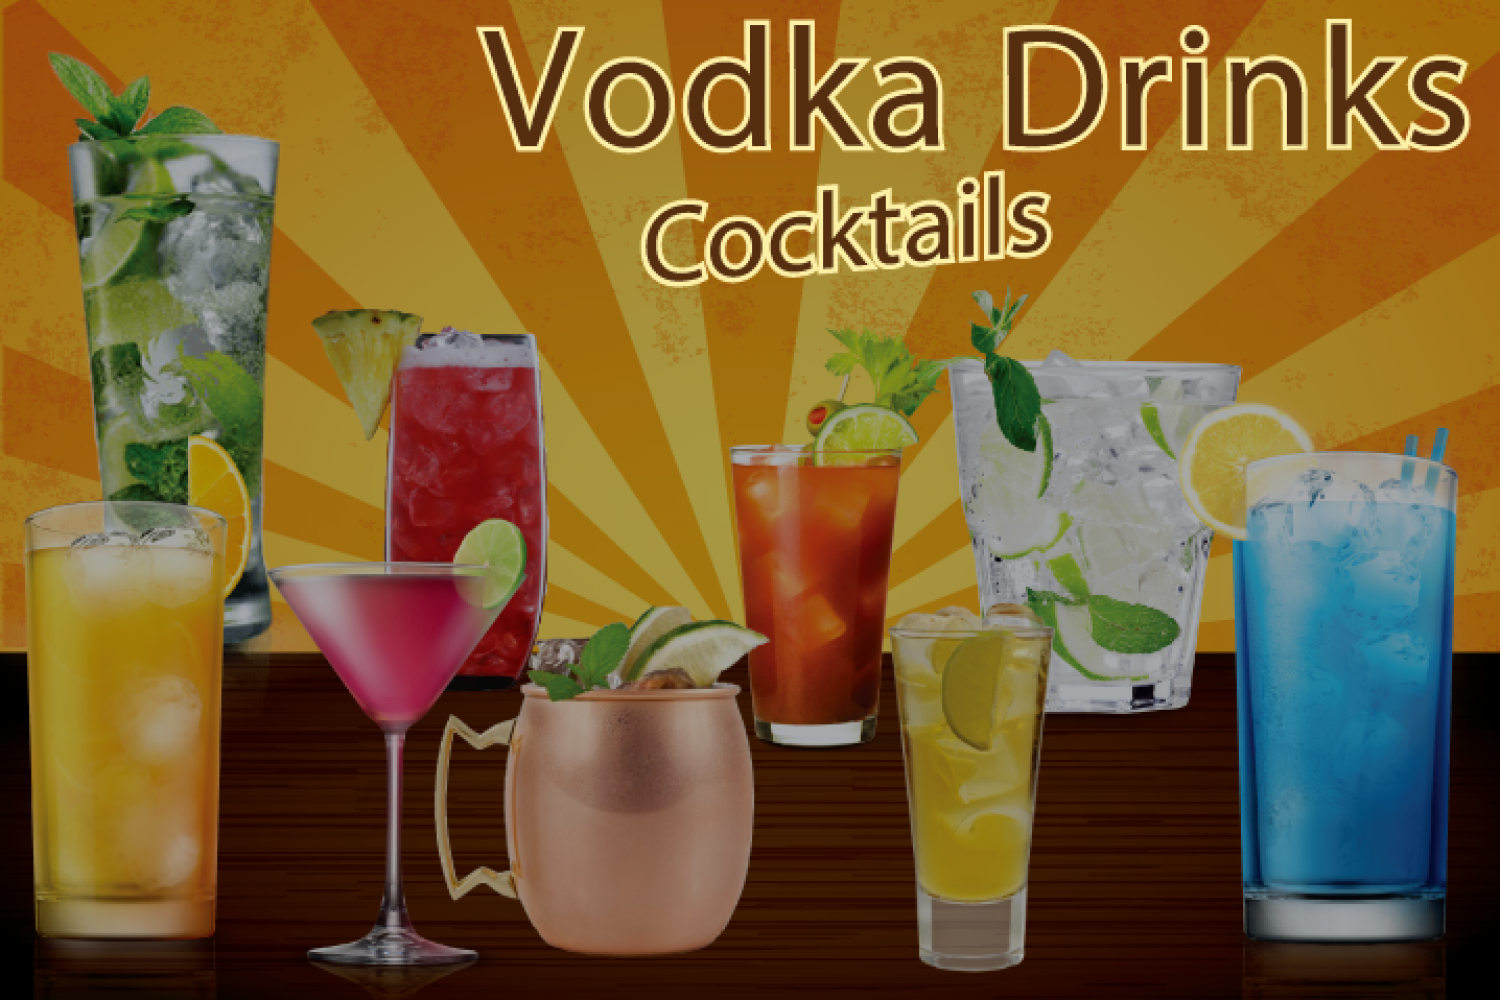 10 best Vodka Cocktails recipes that are easy to make at home and at any time. Infographic